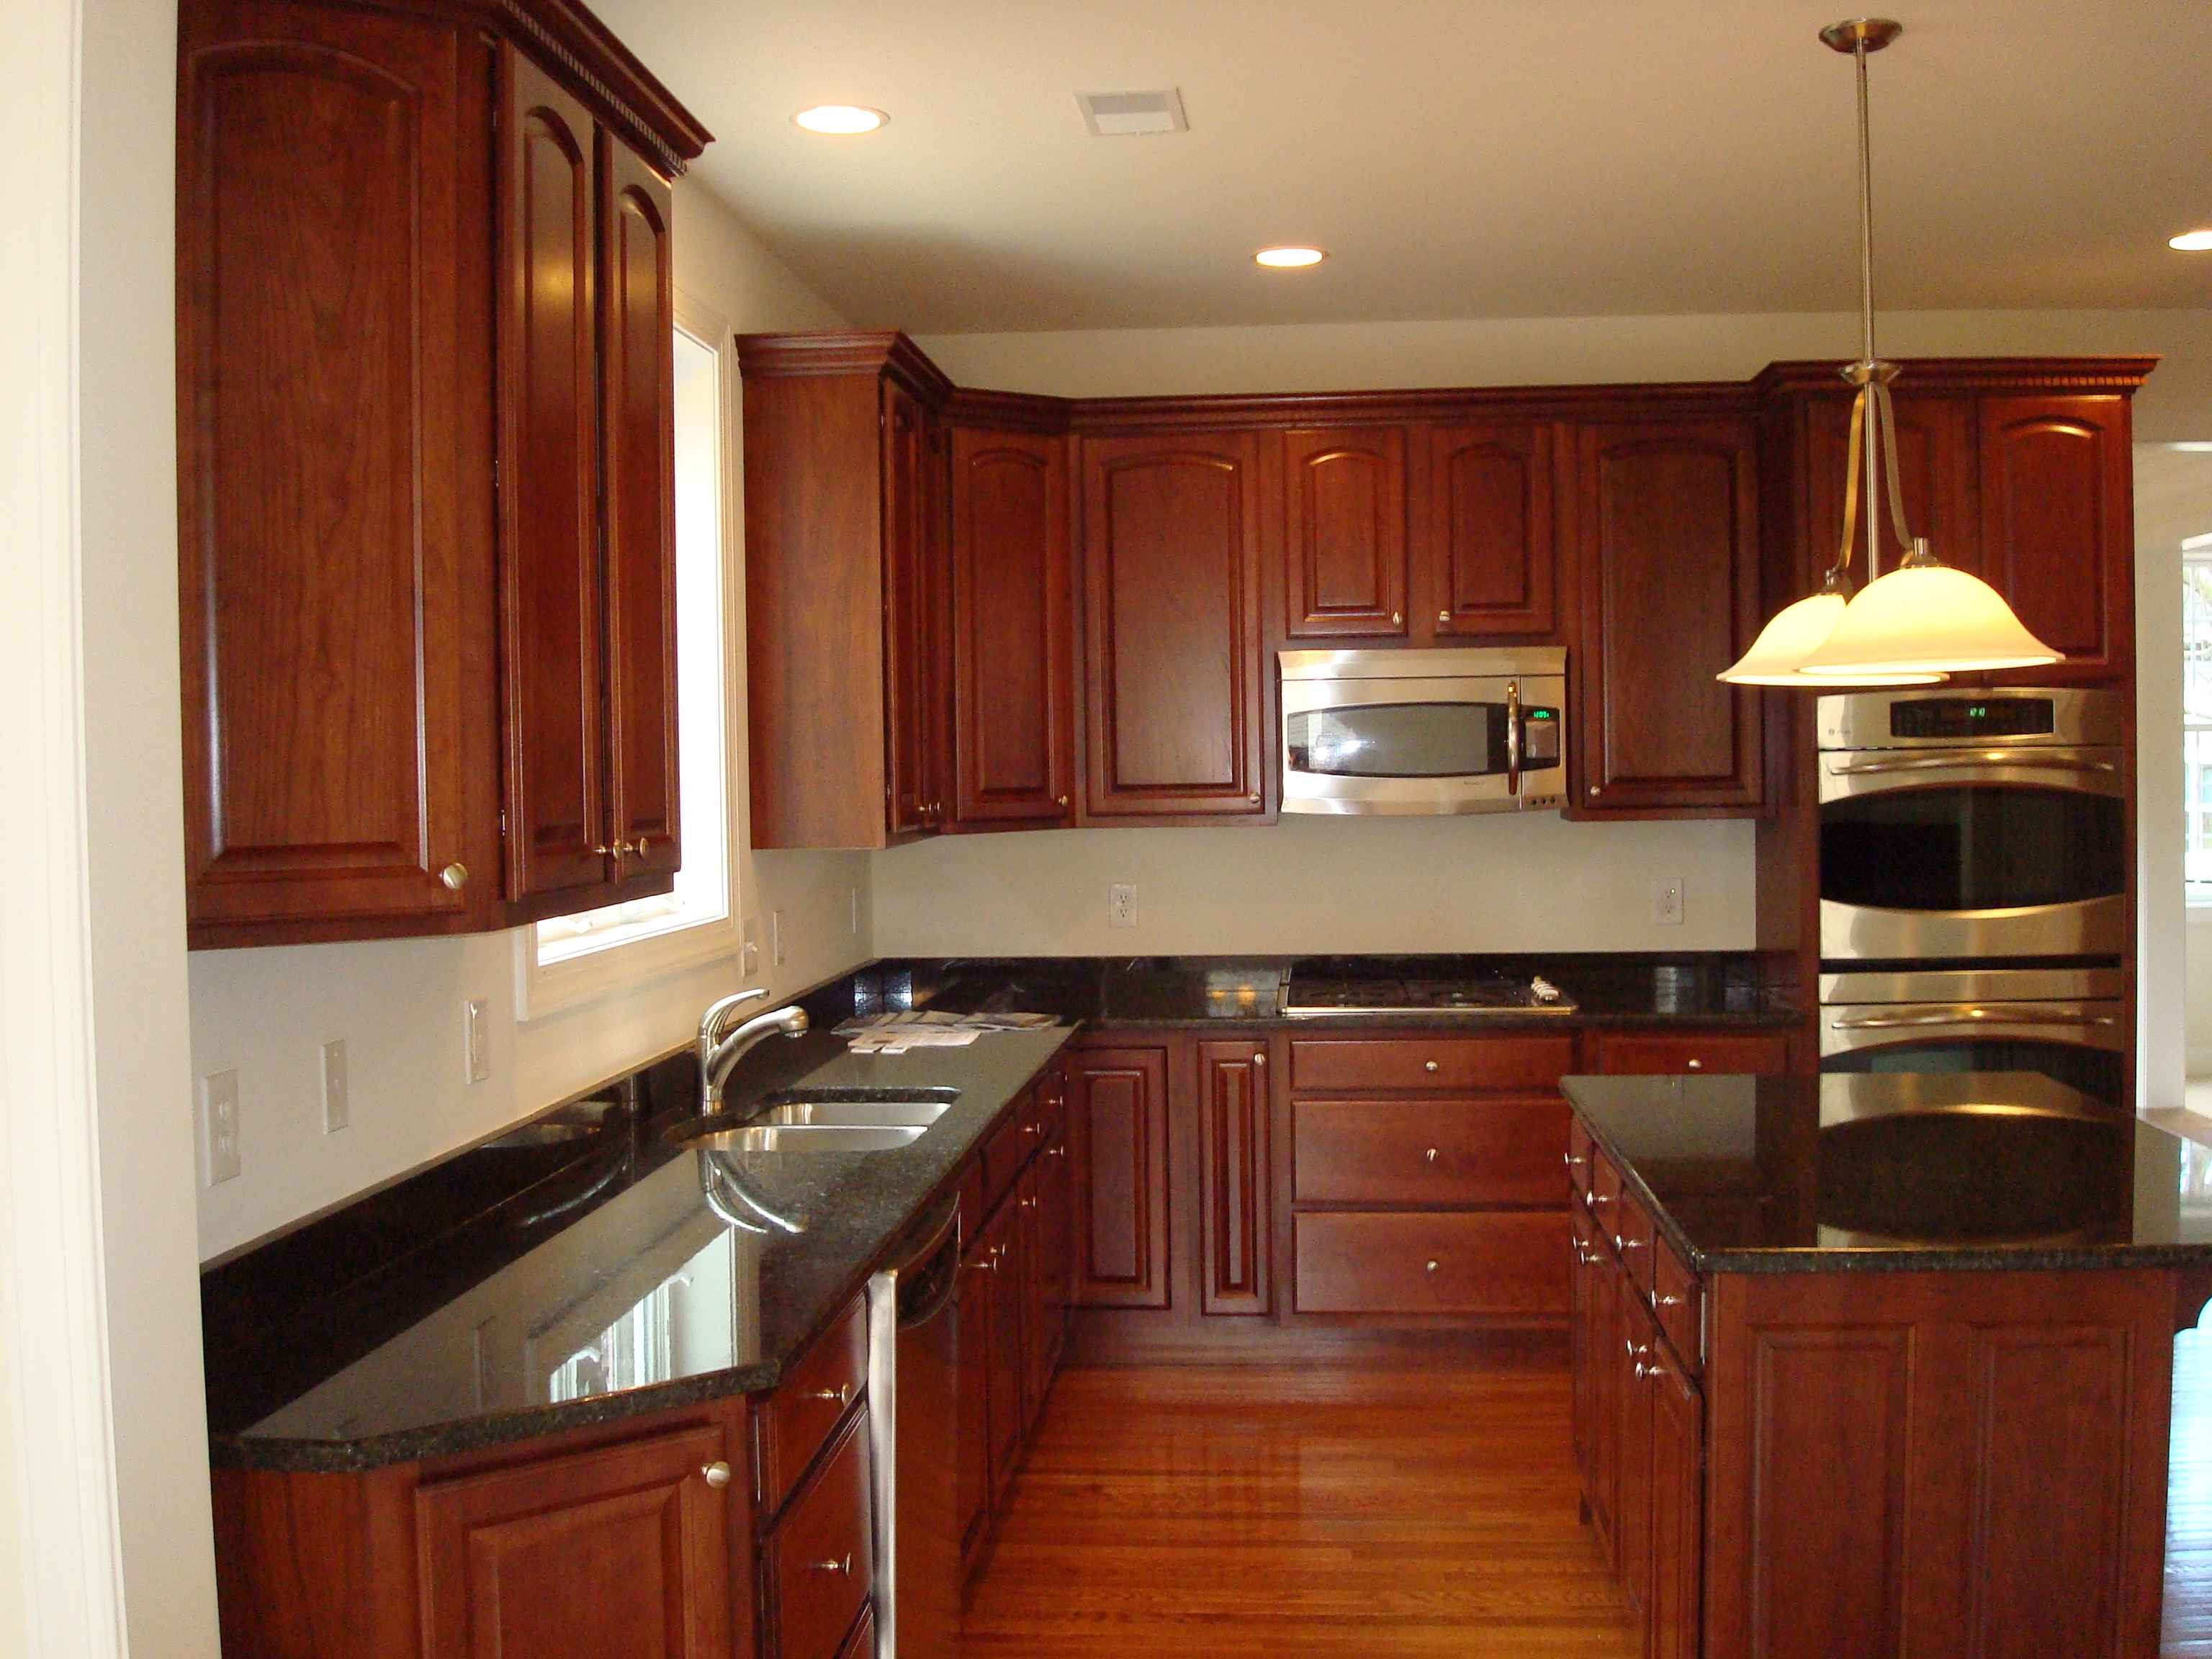 Countertop Kitchen Cabinet : Kitchens and Bathrooms Renovation Kitchen Remodeling Bathroom ...